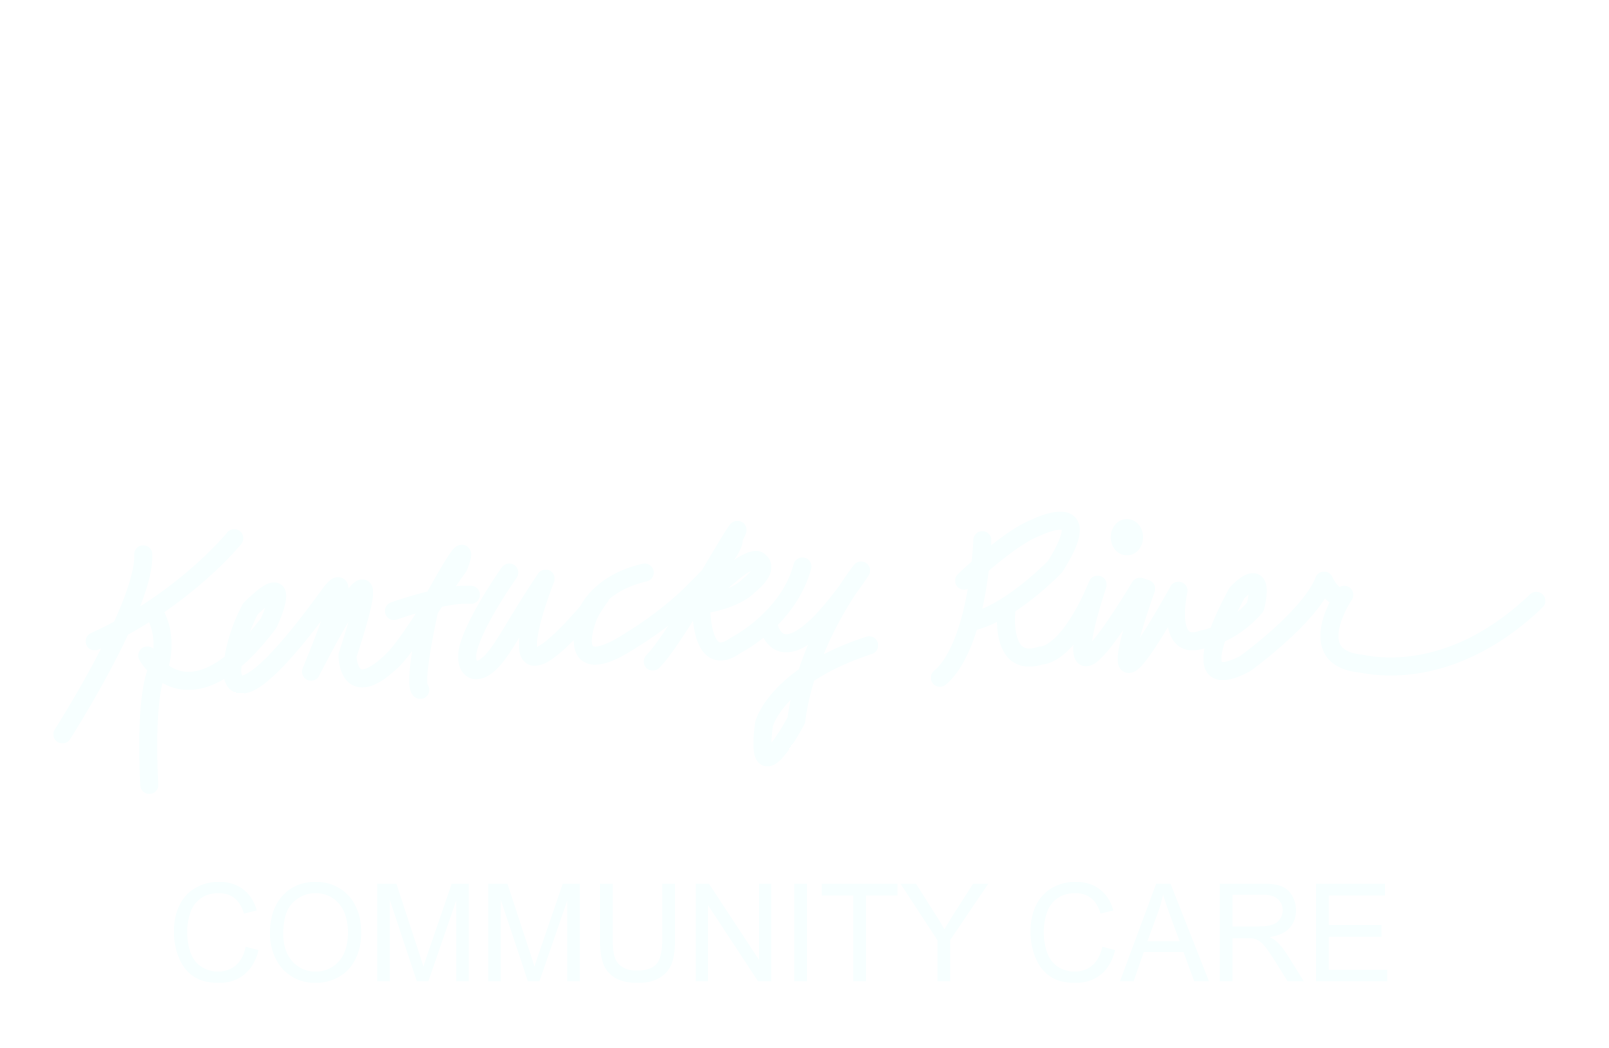 Kentucky River Community Care logo